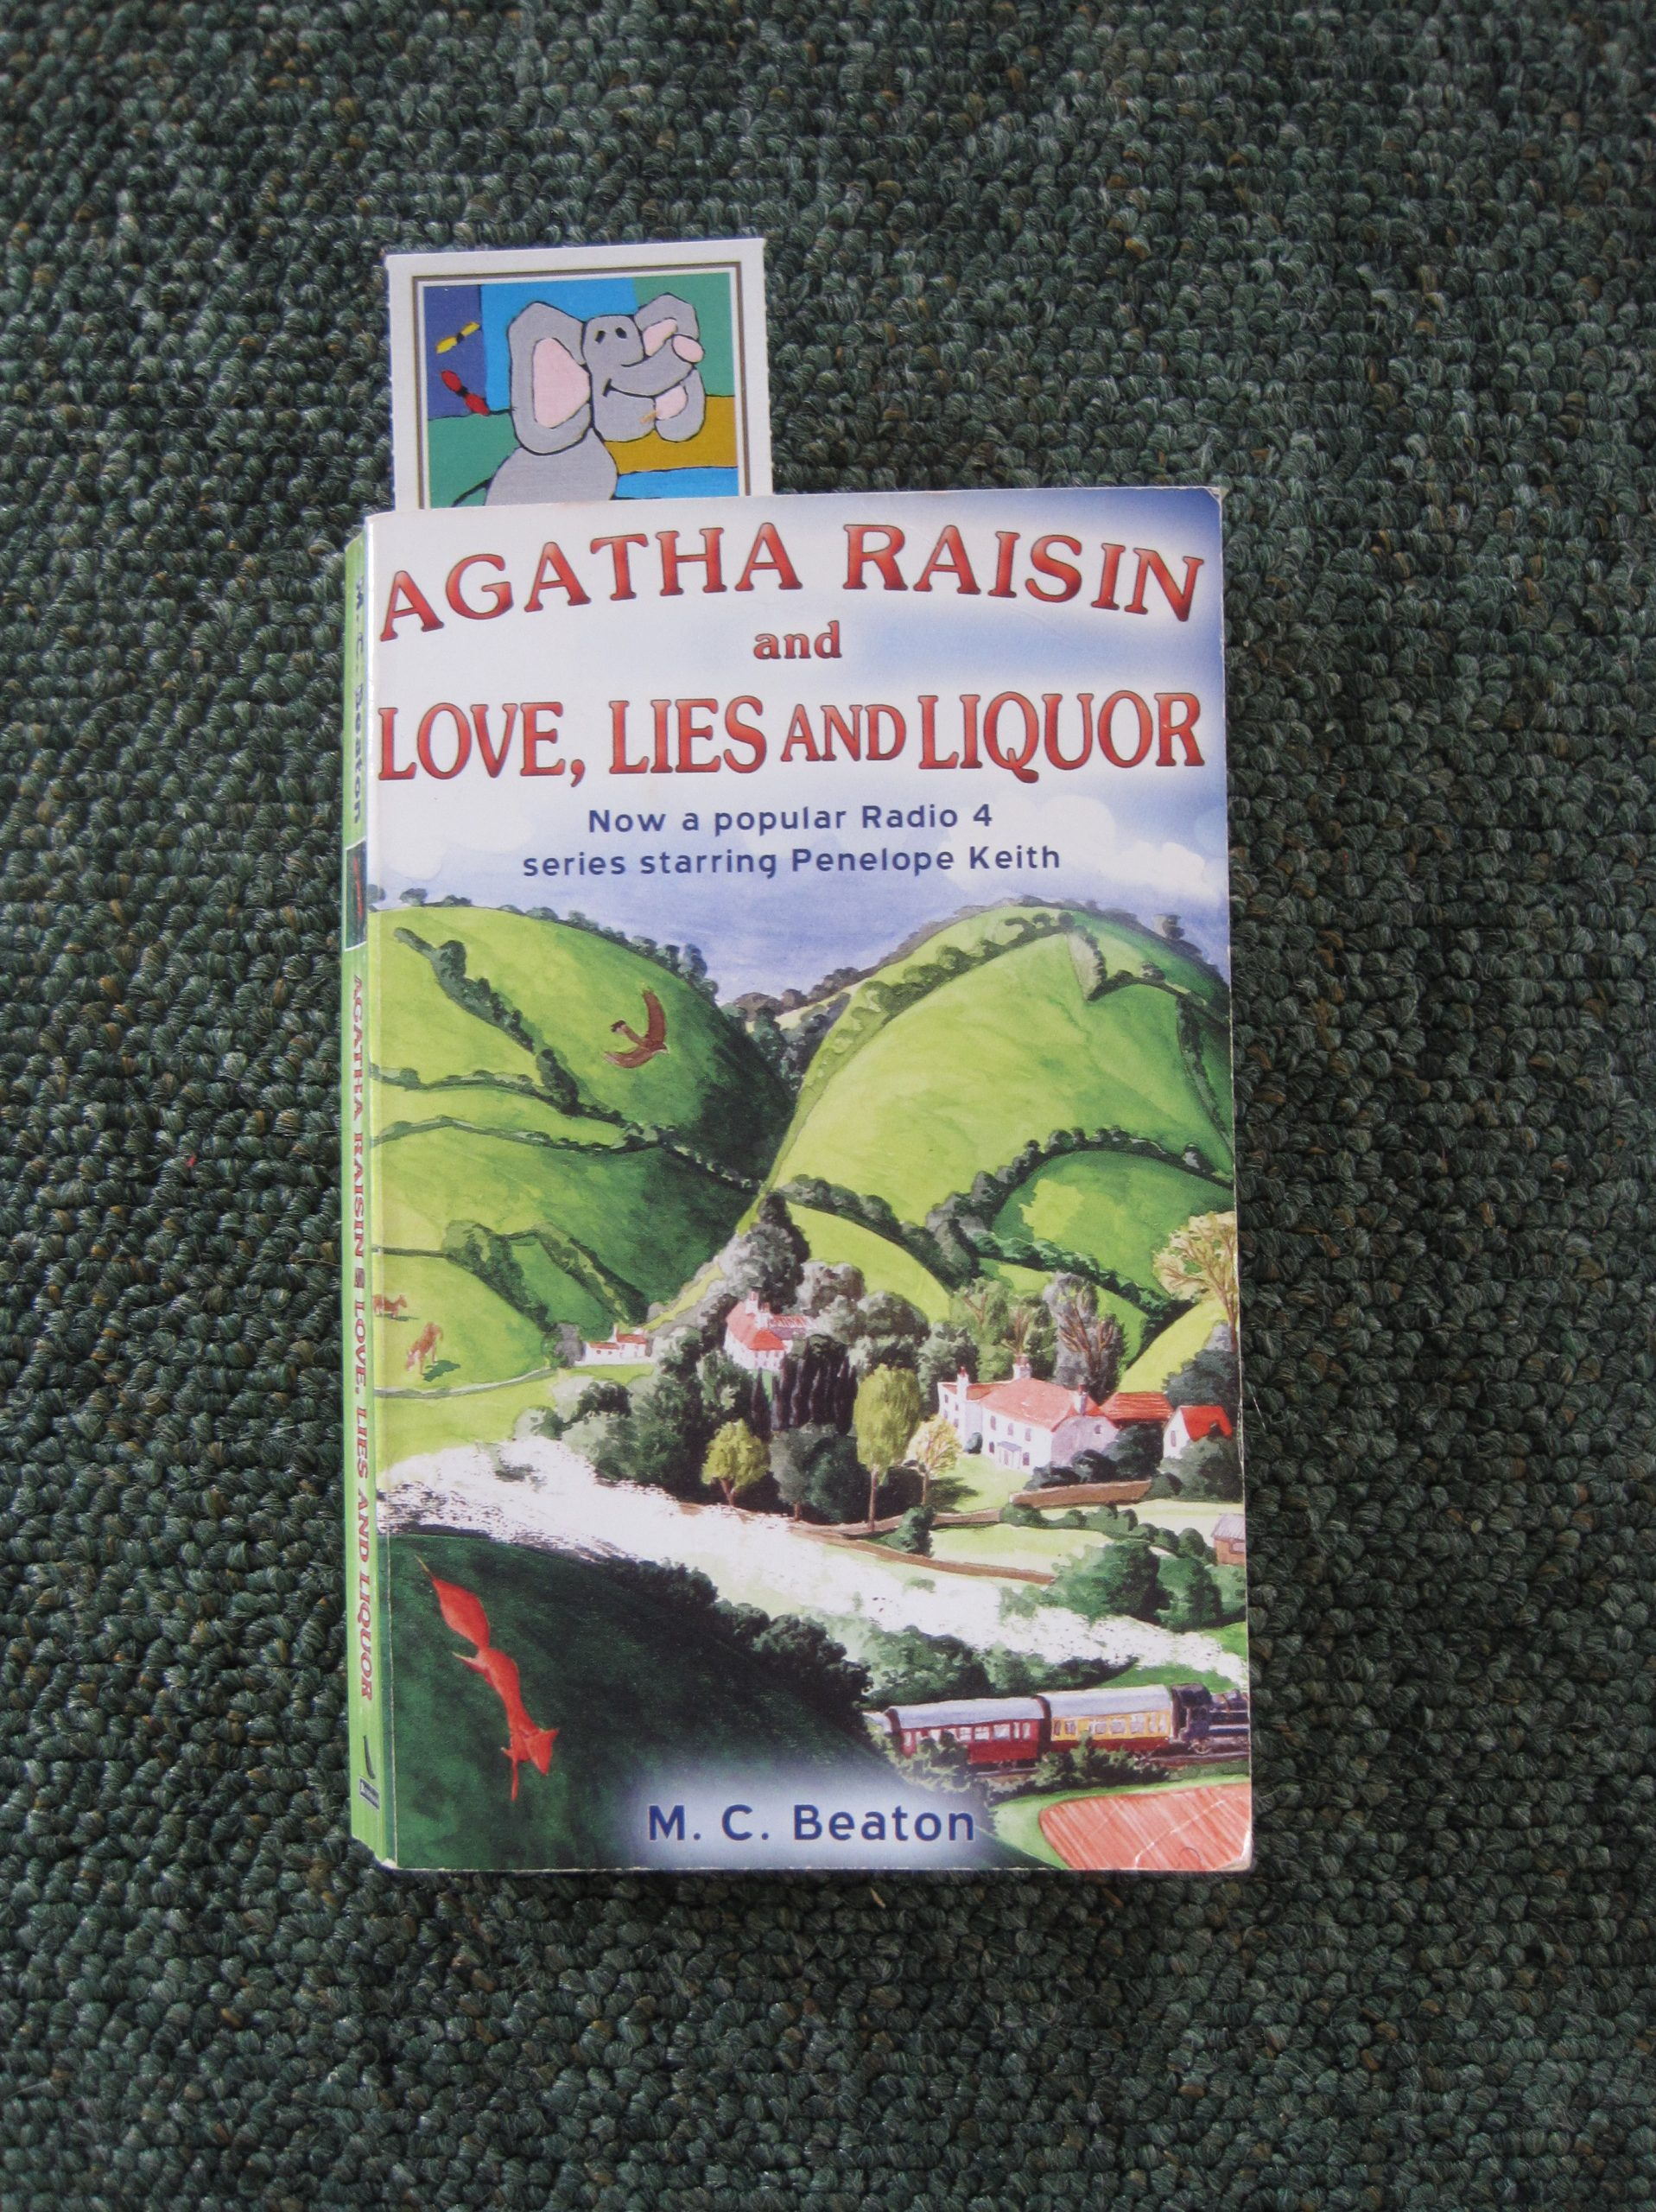 Agatha Raisin and Love Lies and Liquor - photo by Juliamaud